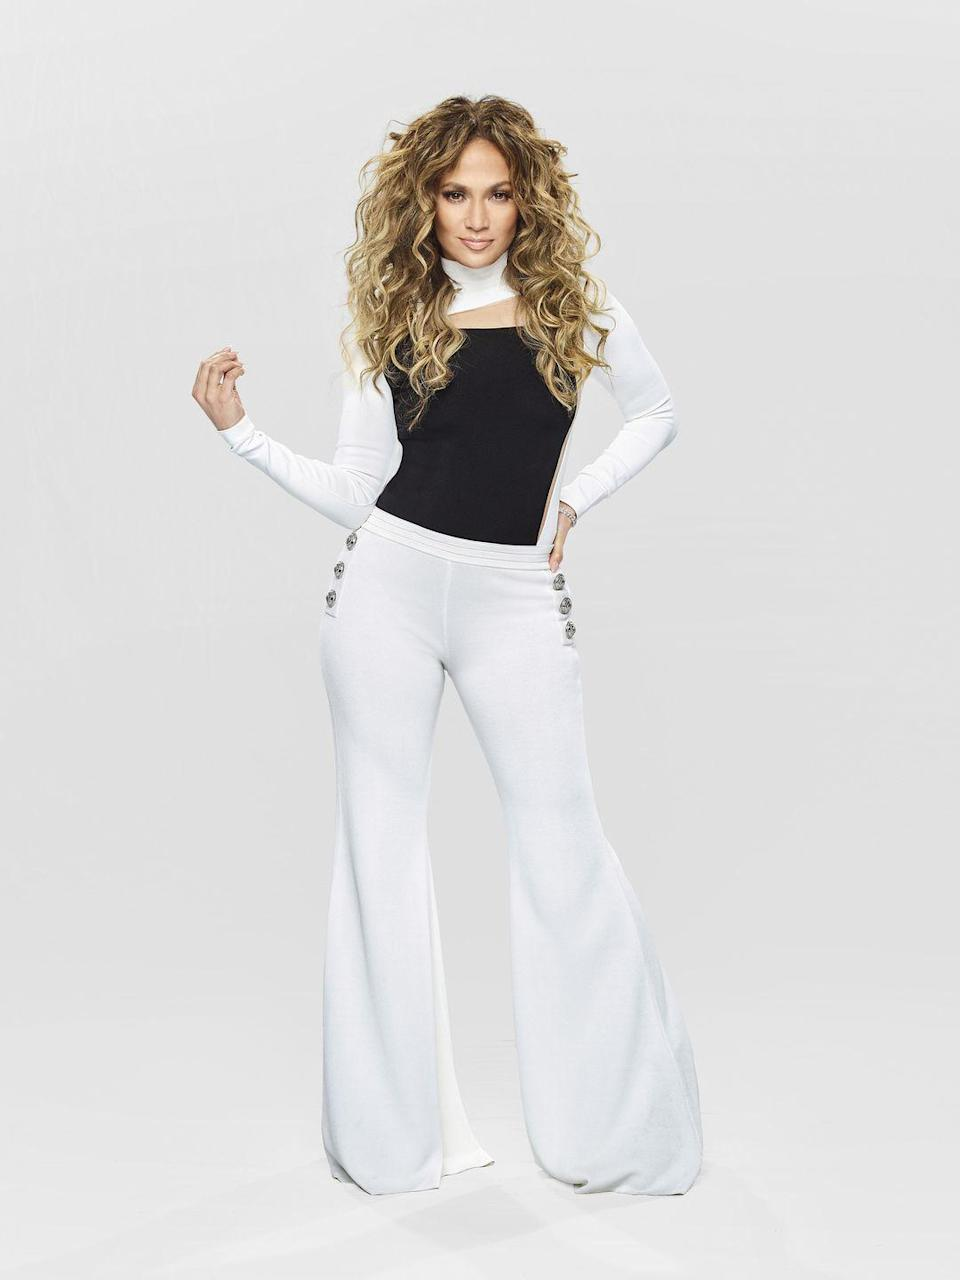 """<p>Instead of fine, natural lines, plenty of people will adapt to looks like Jennifer Lopez's—vivid highlights that really pop, says <a href=""""https://www.instagram.com/guy_tang/?hl=en"""" rel=""""nofollow noopener"""" target=""""_blank"""" data-ylk=""""slk:Guy Tang"""" class=""""link rapid-noclick-resp"""">Guy Tang</a>, colorist and #mydentity brand founder. </p>"""